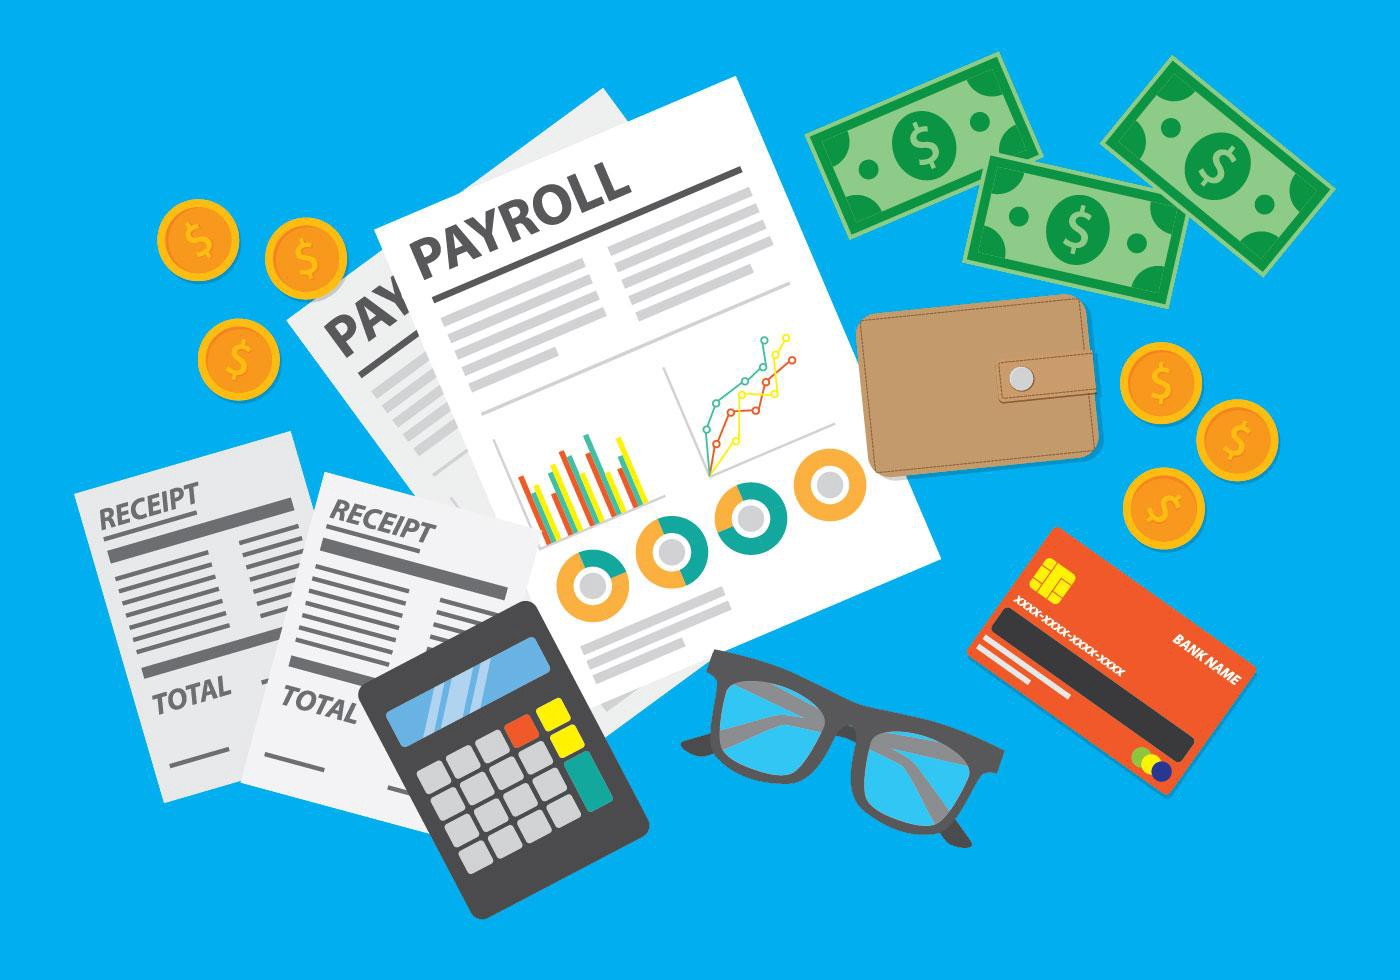 Top 7 Free And Open Source Payroll Software Fretty